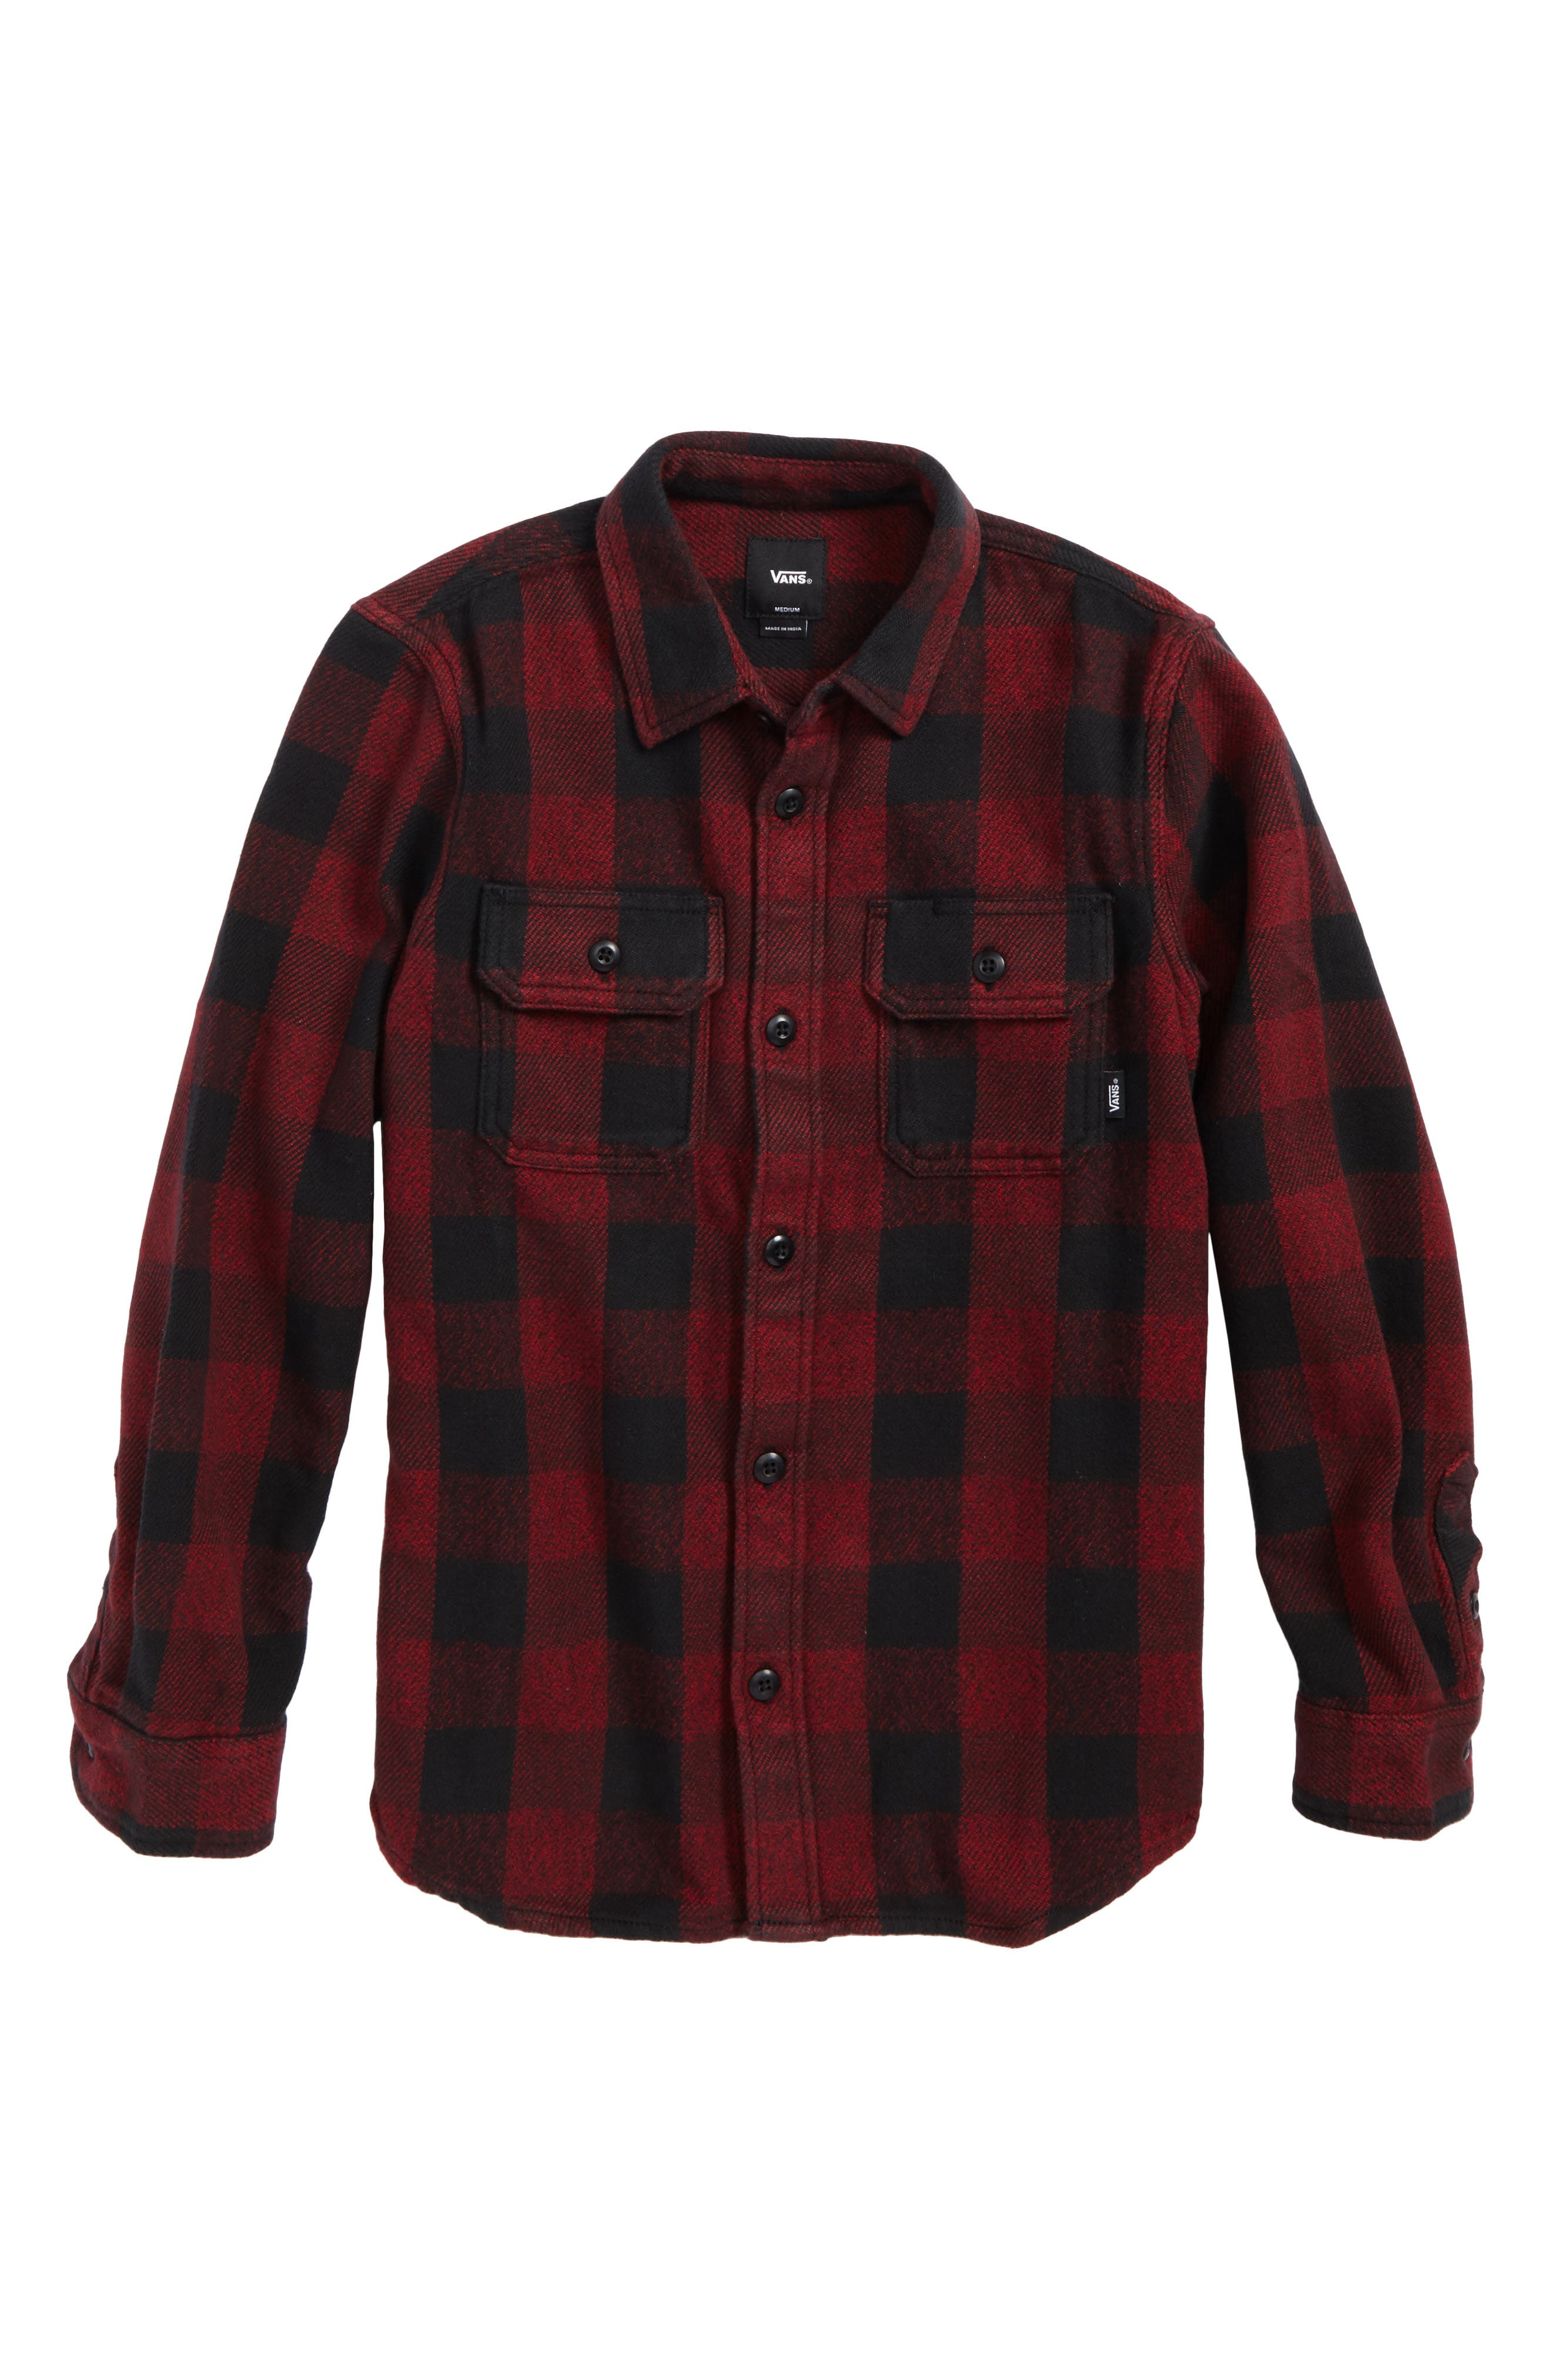 Wisner Buffalo Plaid Twill Shirt,                             Main thumbnail 1, color,